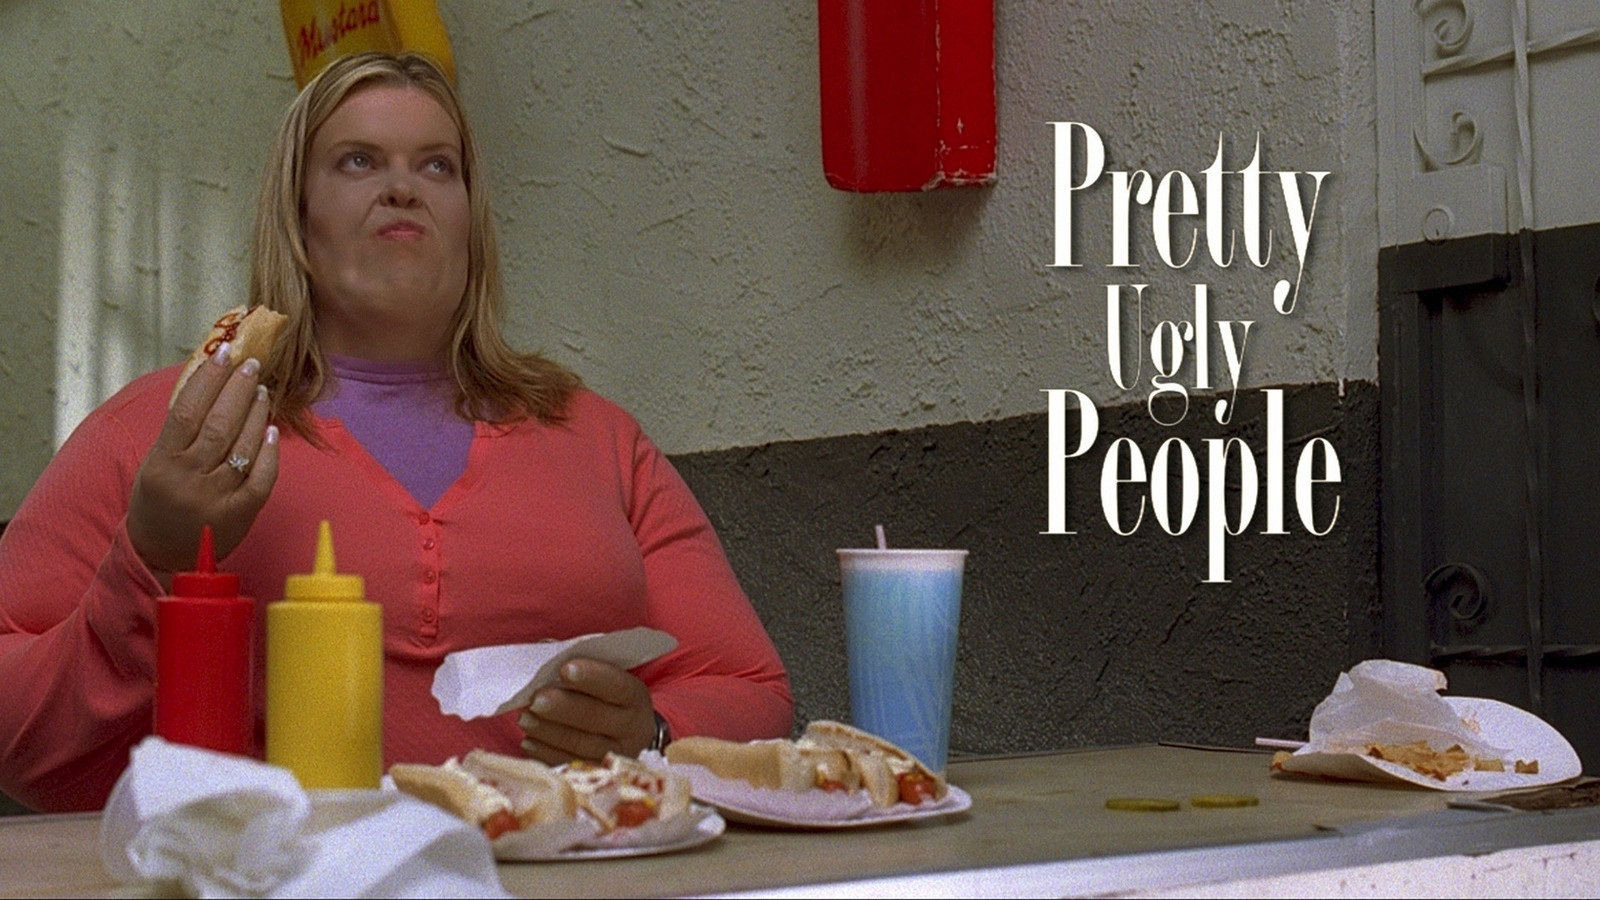 Ugly people and pretty Pretty Ugly